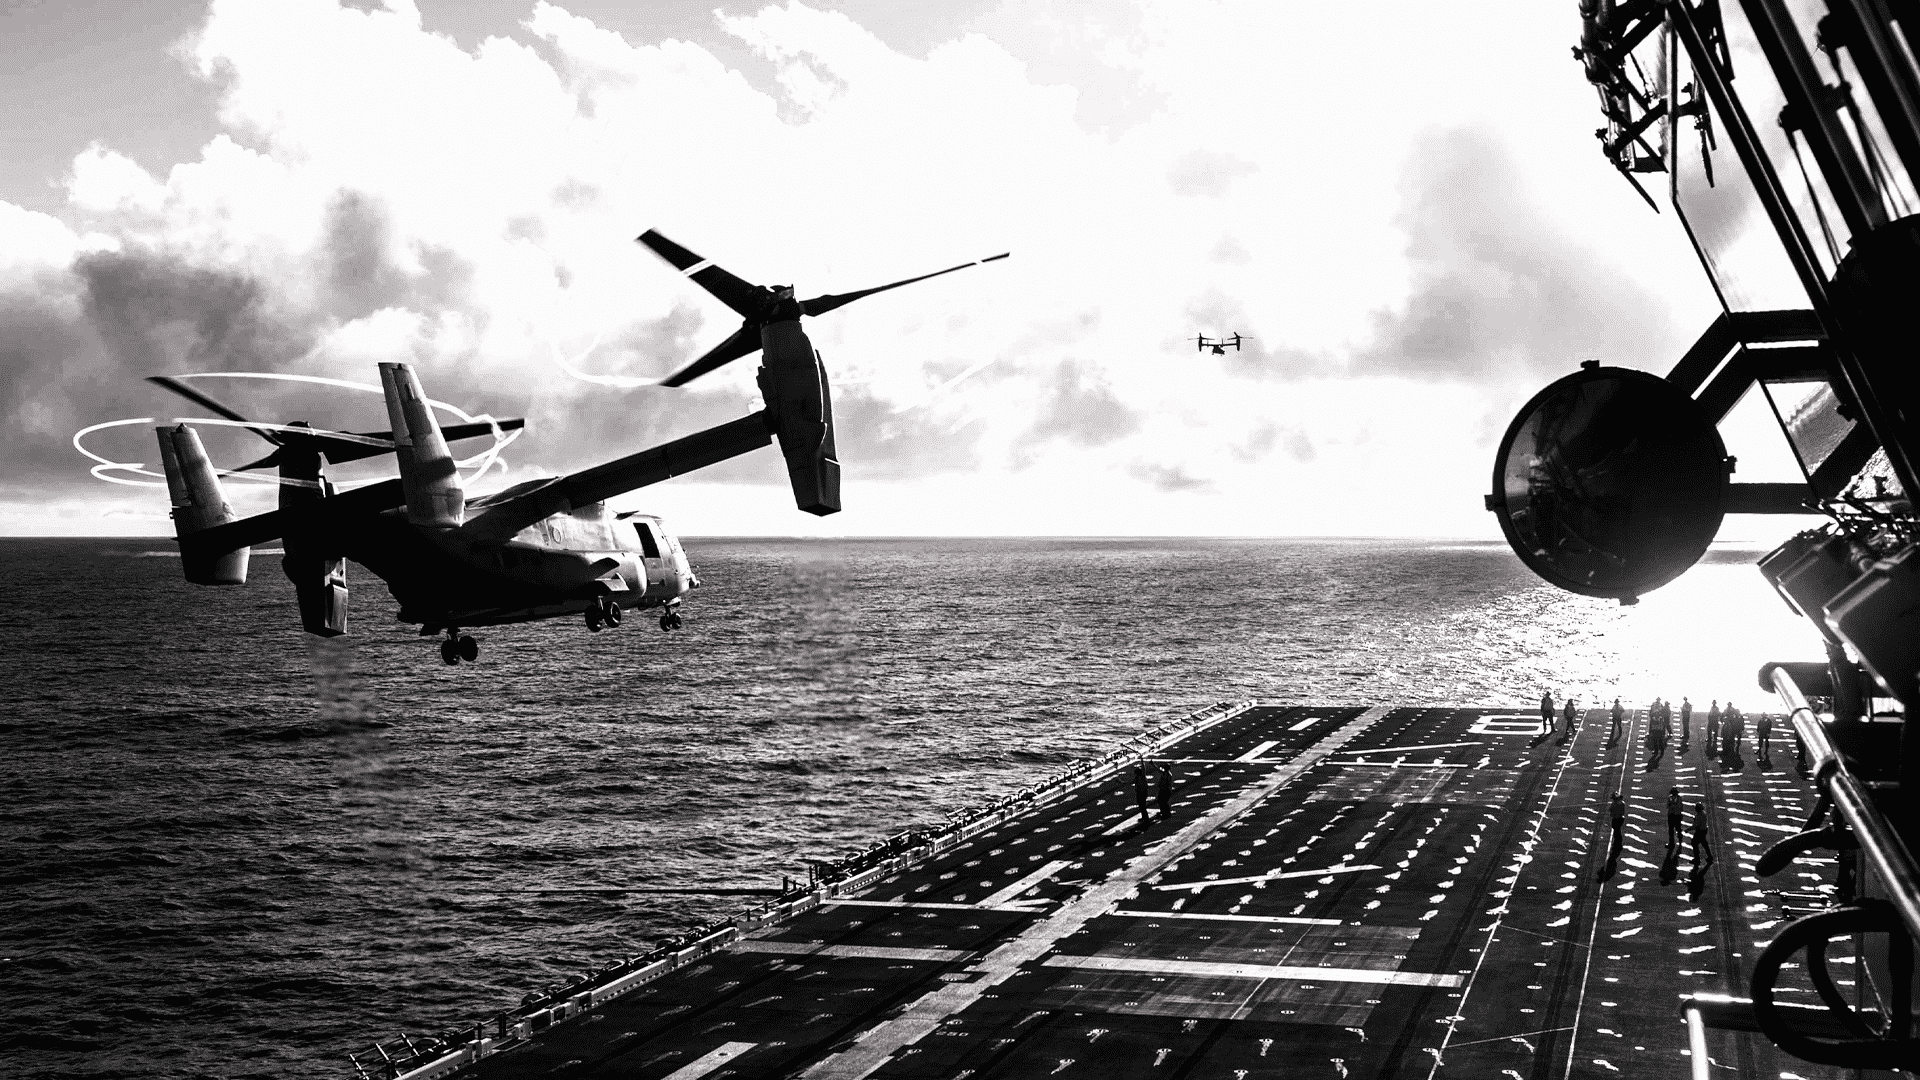 A Marine Corps MV-22B Osprey takes off from the USS Makin Island in the Pacific Ocean, Dec. 4, 2019.